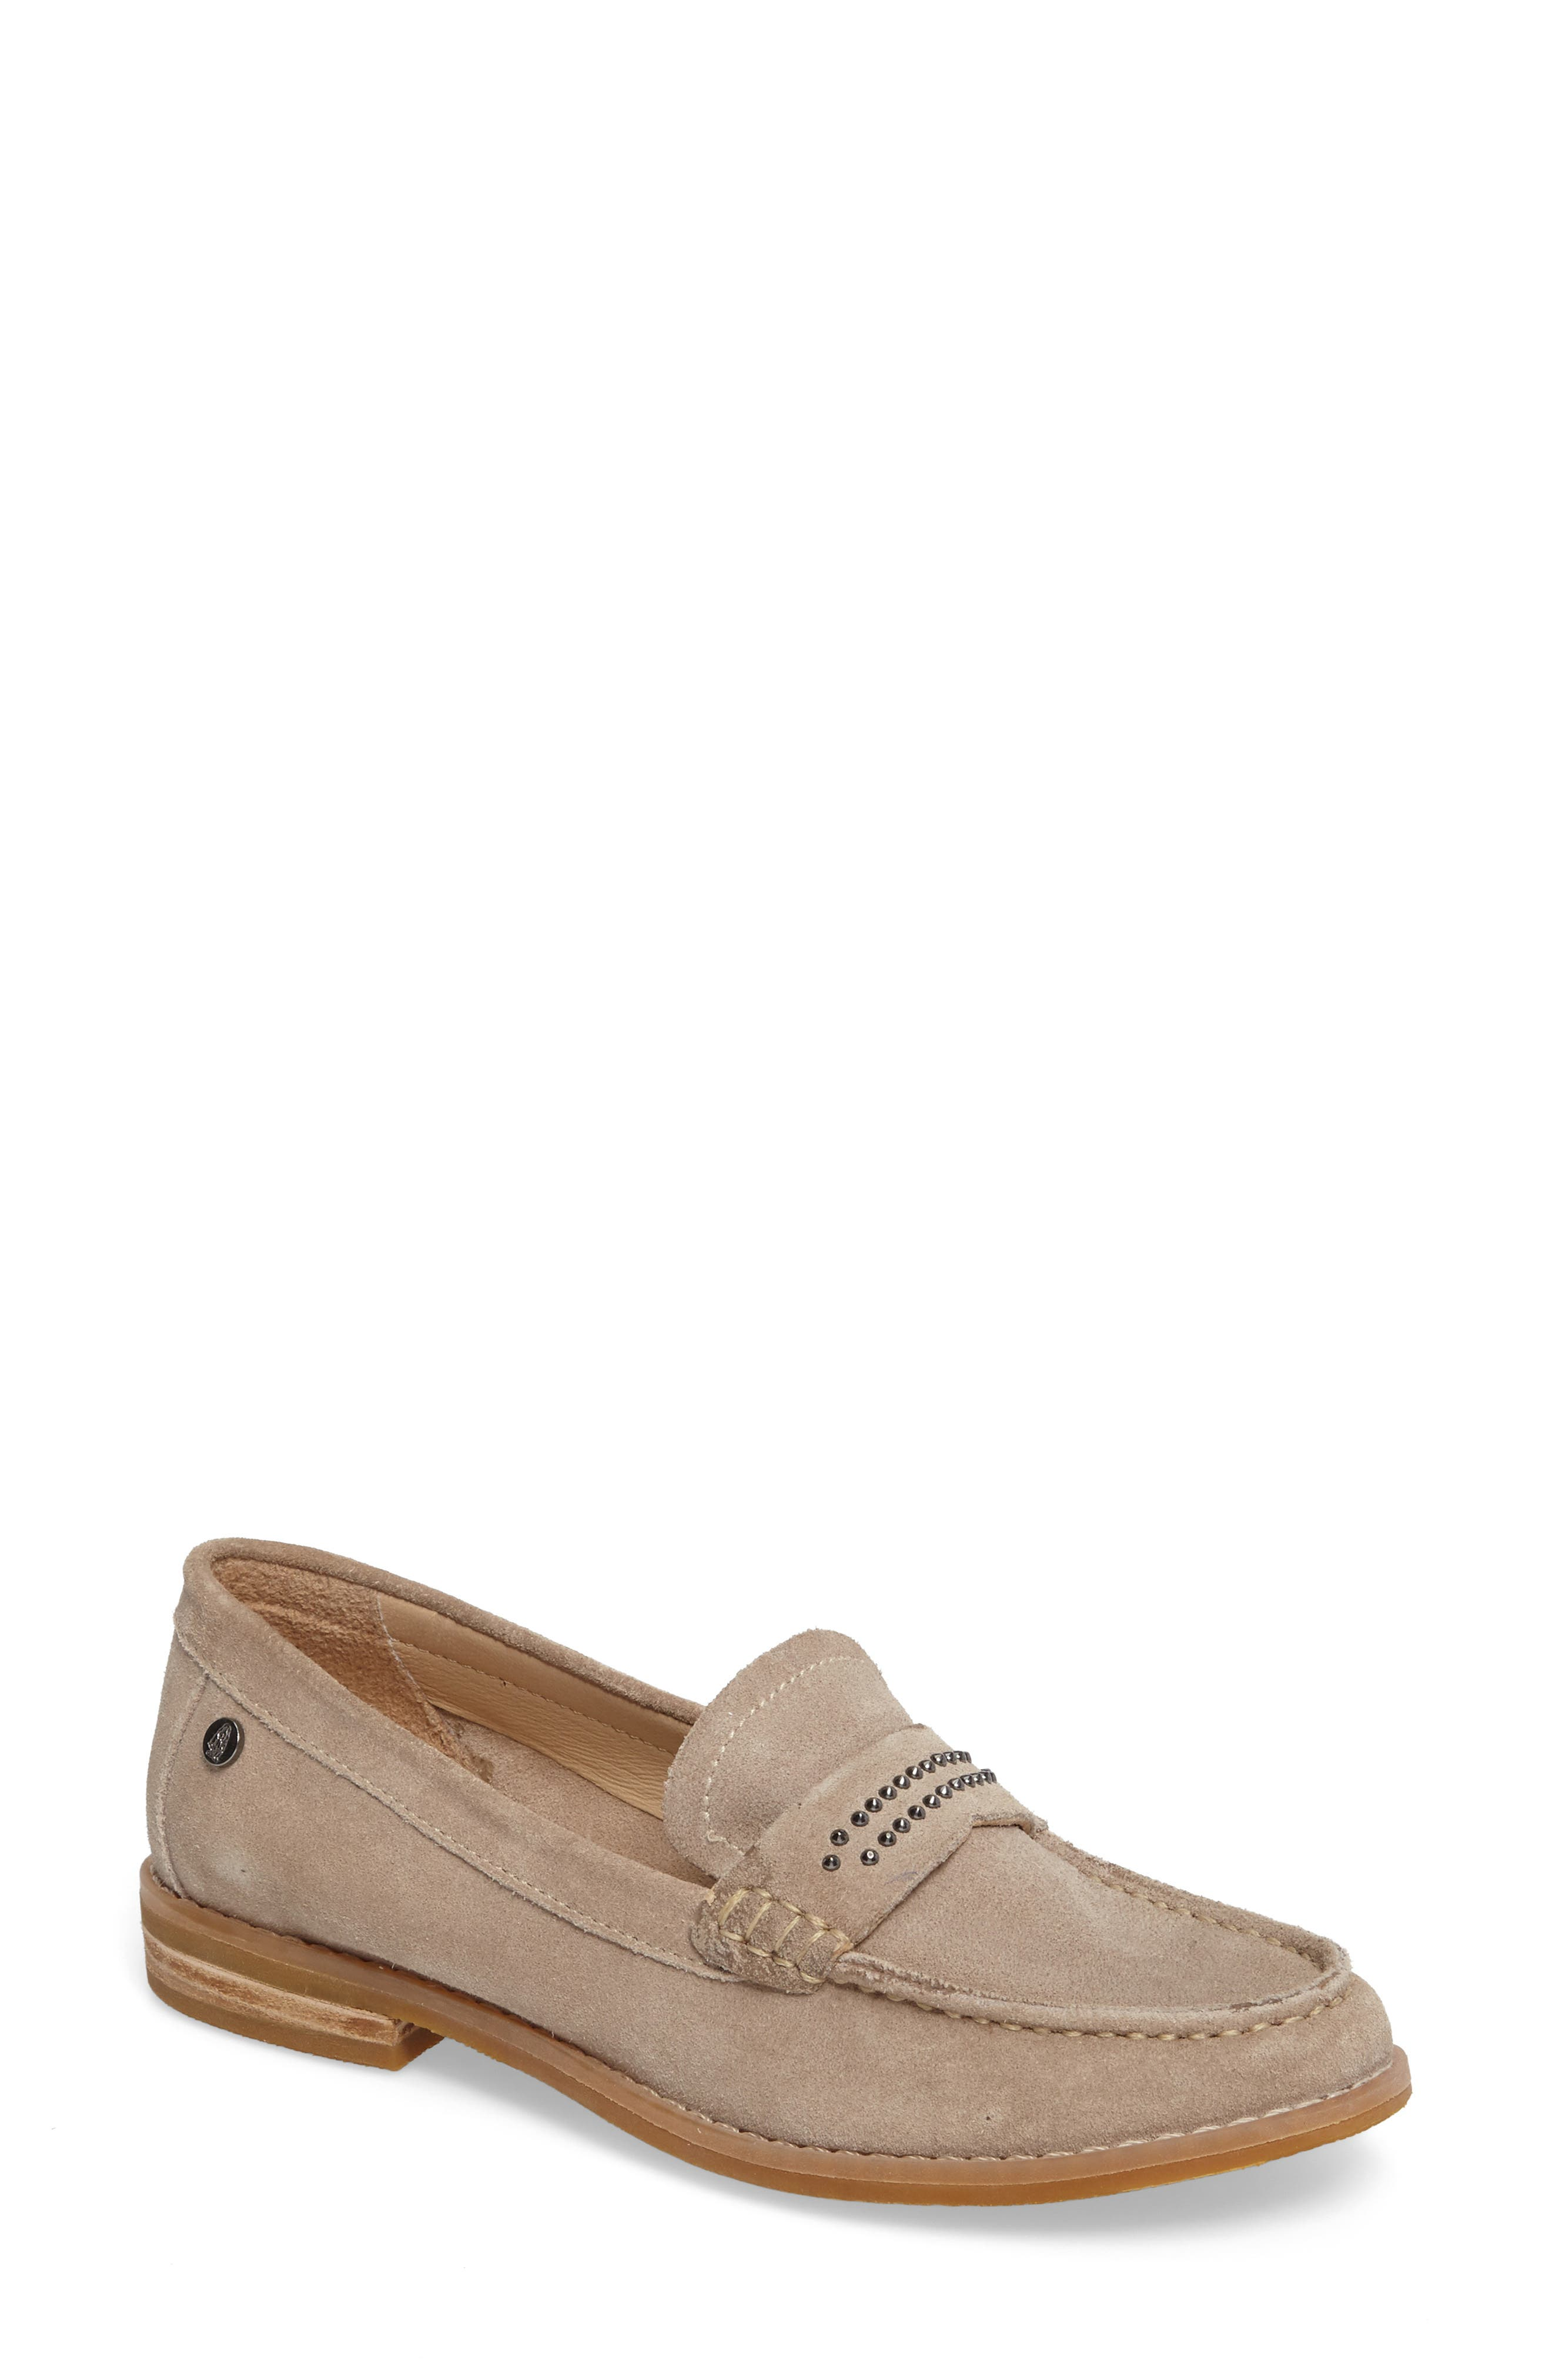 Aubree Chardon Loafer,                         Main,                         color, Taupe Suede